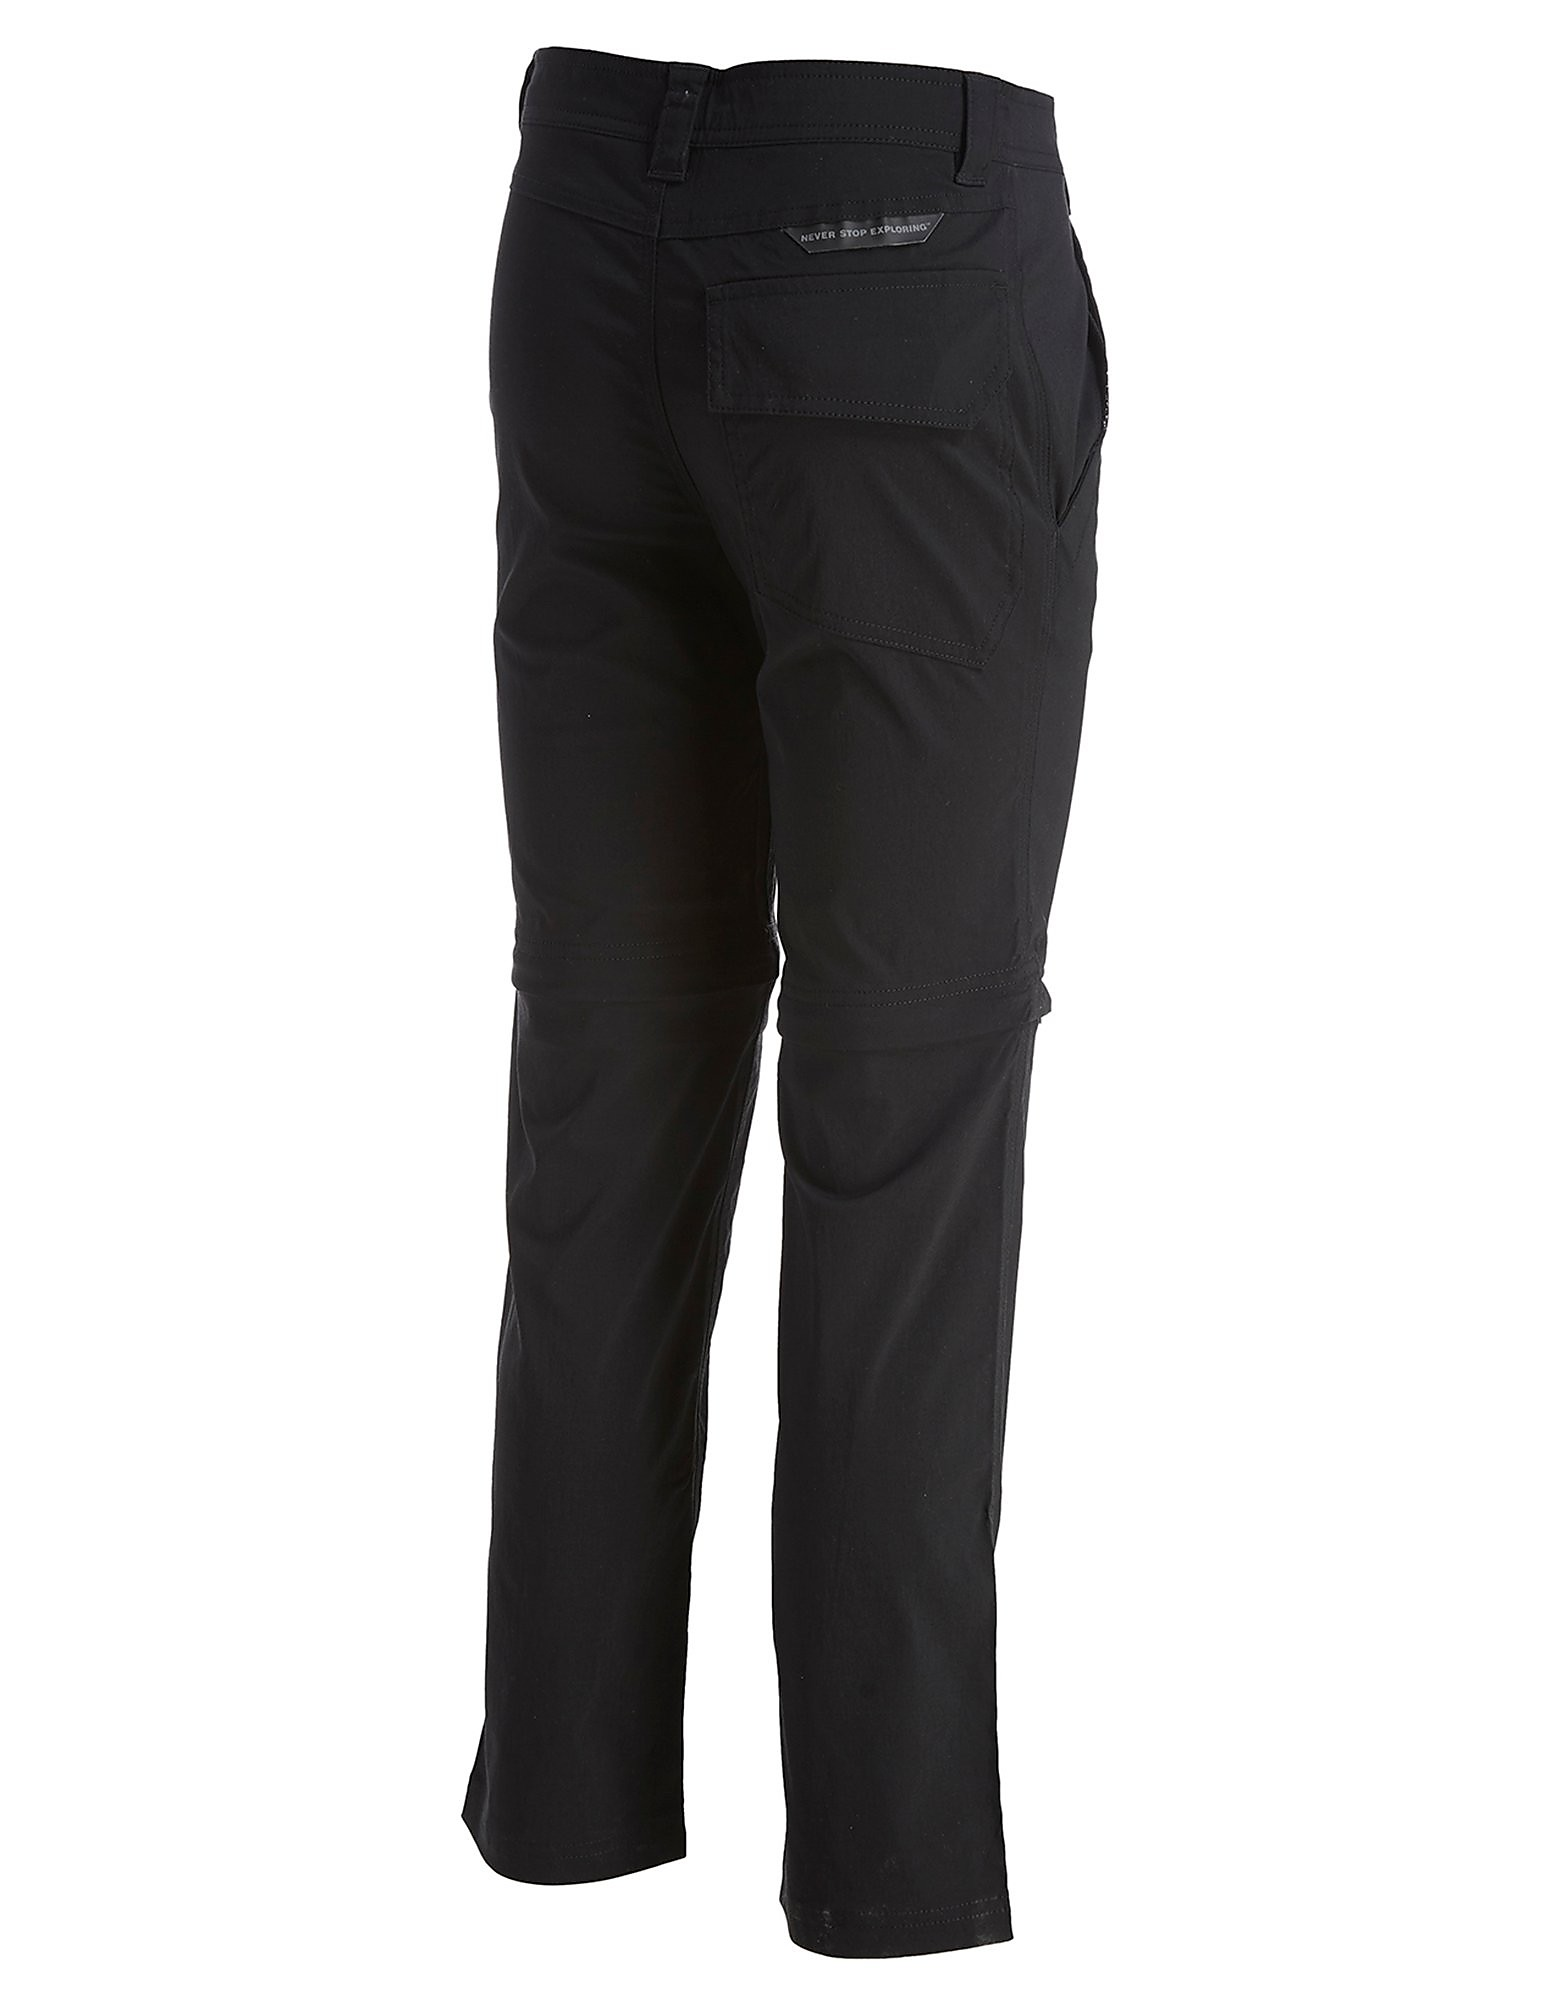 The North Face pantalón Convertible júnior